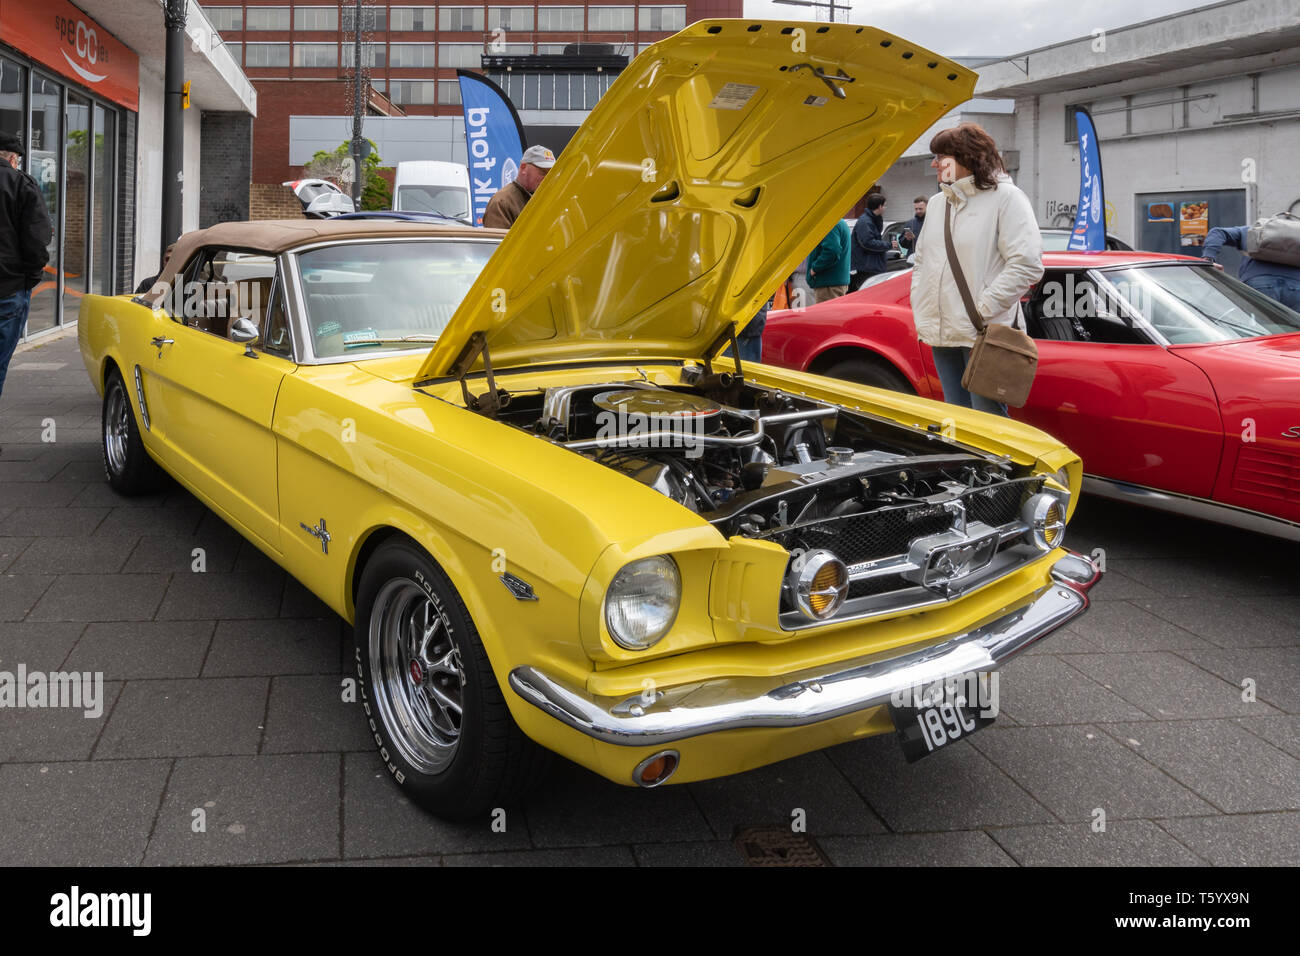 Yellow 1965 ford mustang 4700cc car at a classic motor vehicle show in the uk